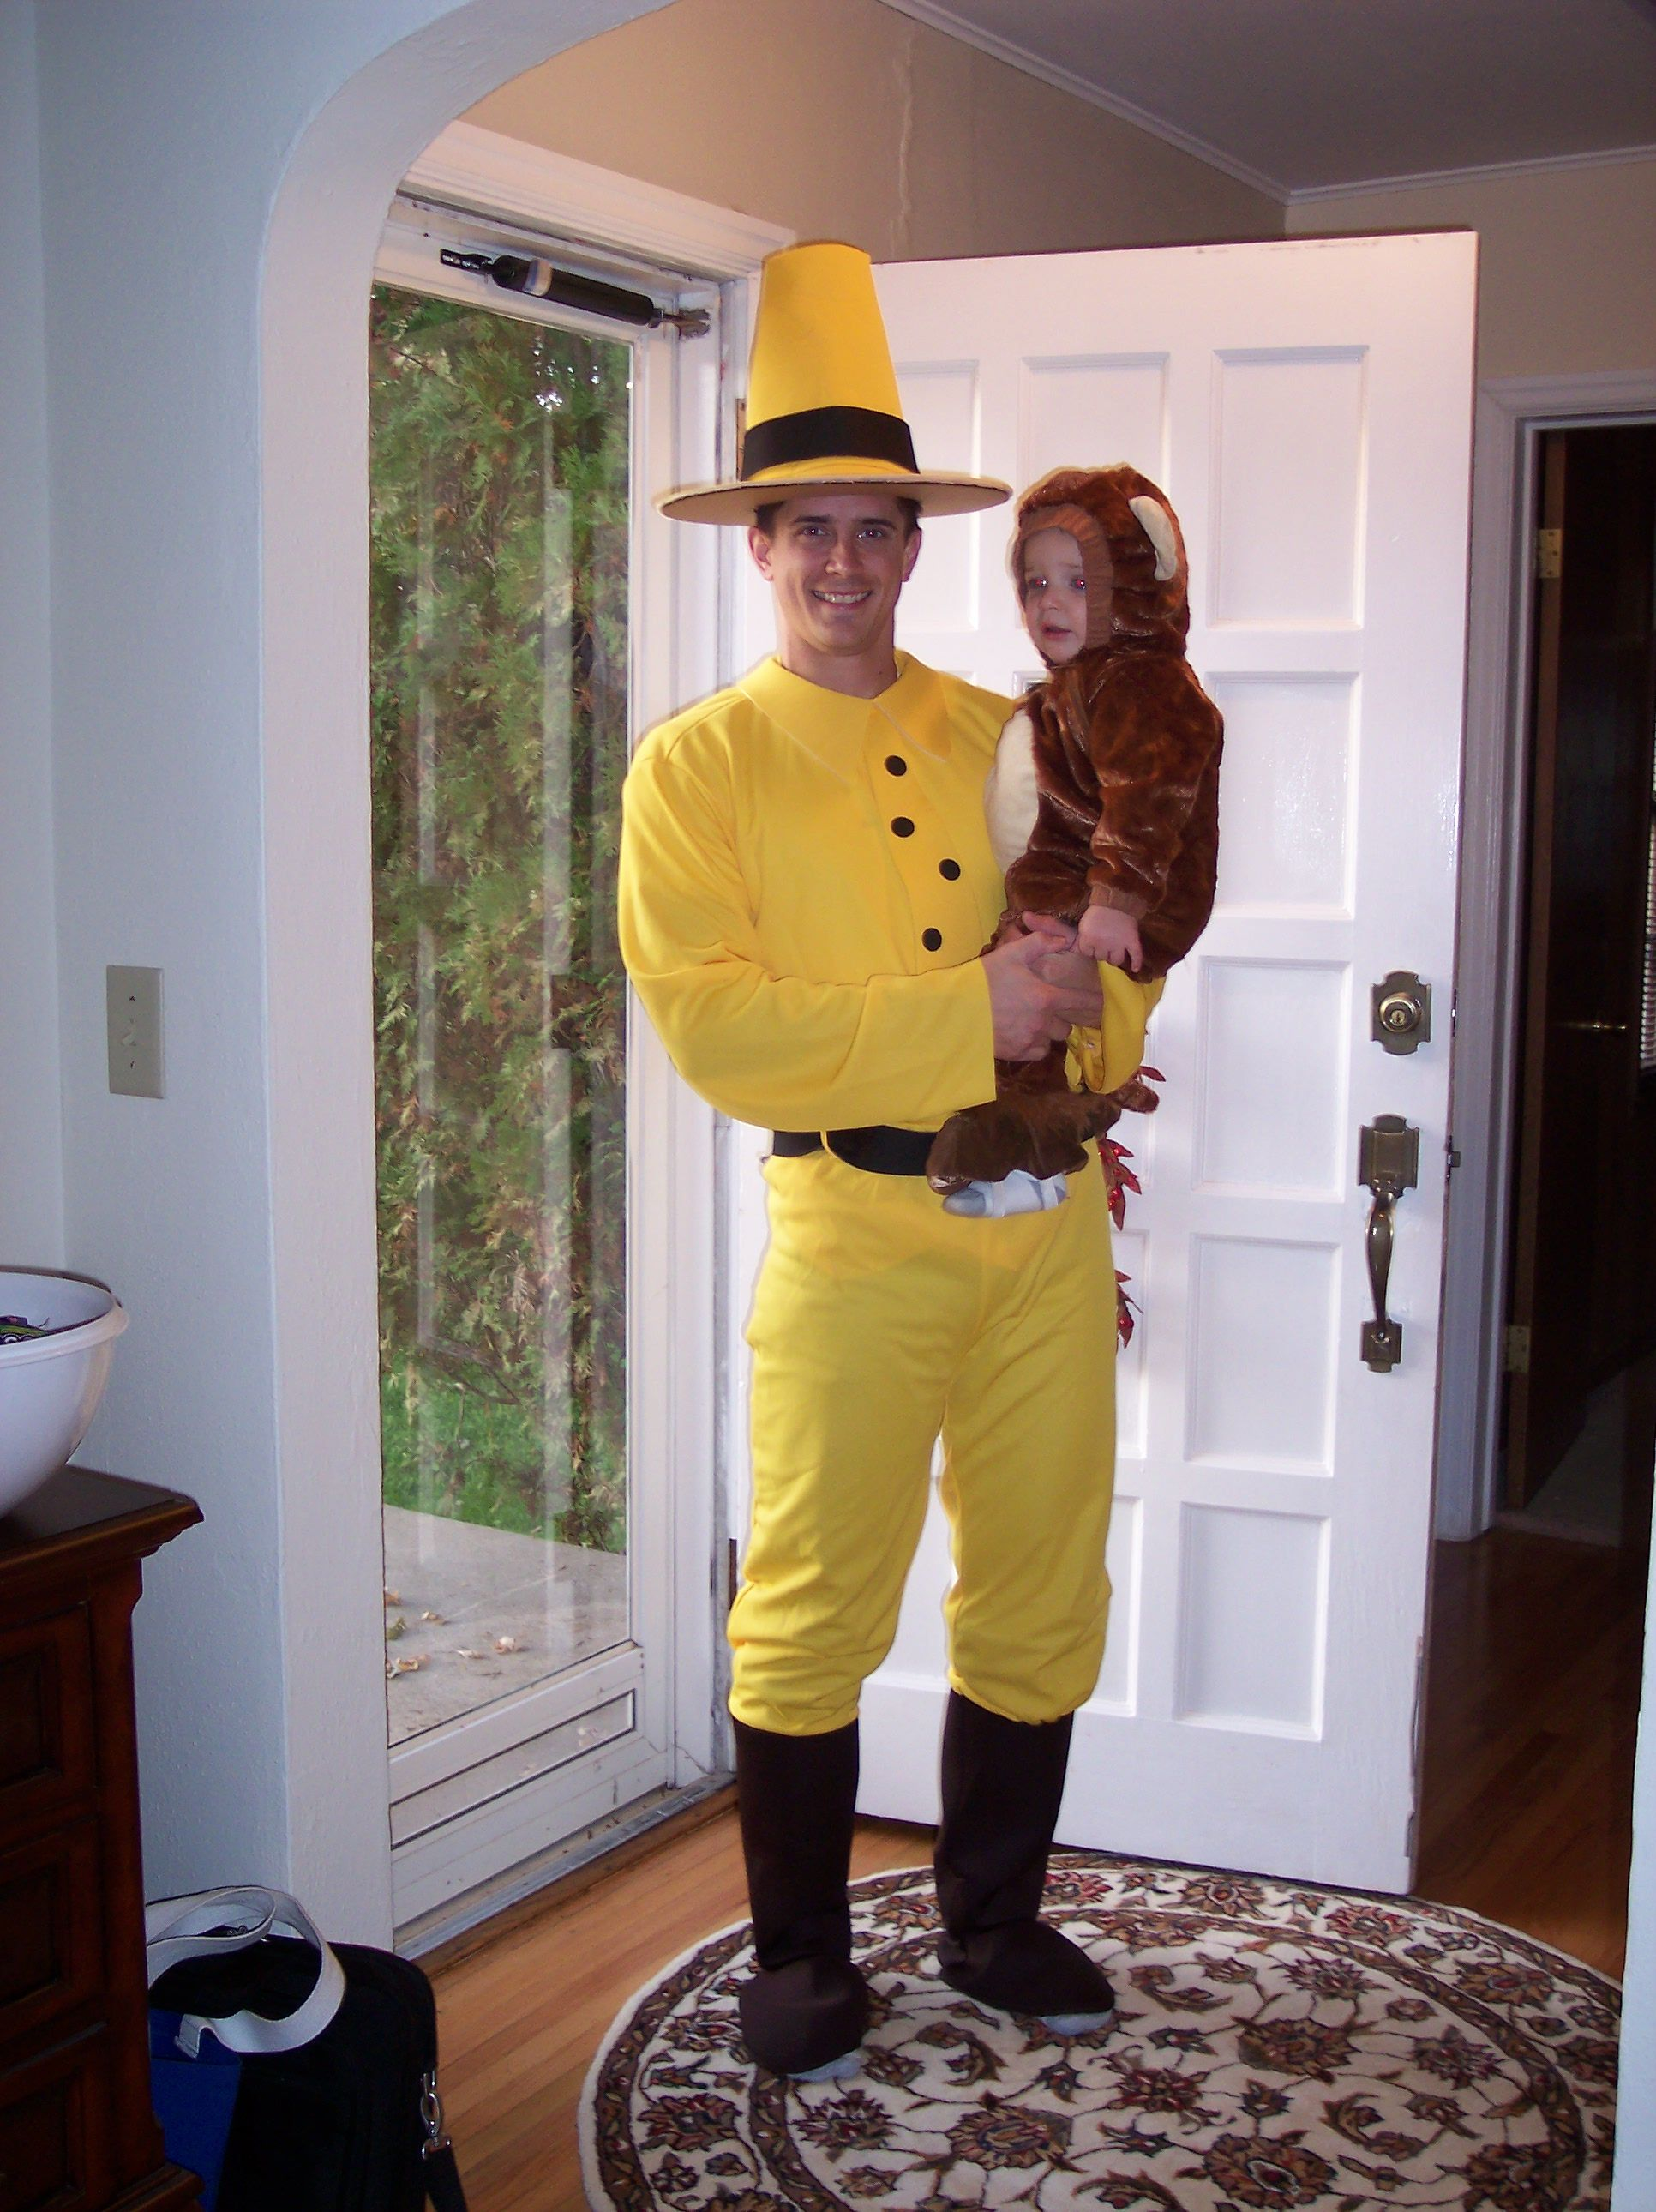 one of the cutest parentchild halloween costume ideas ive ever seen